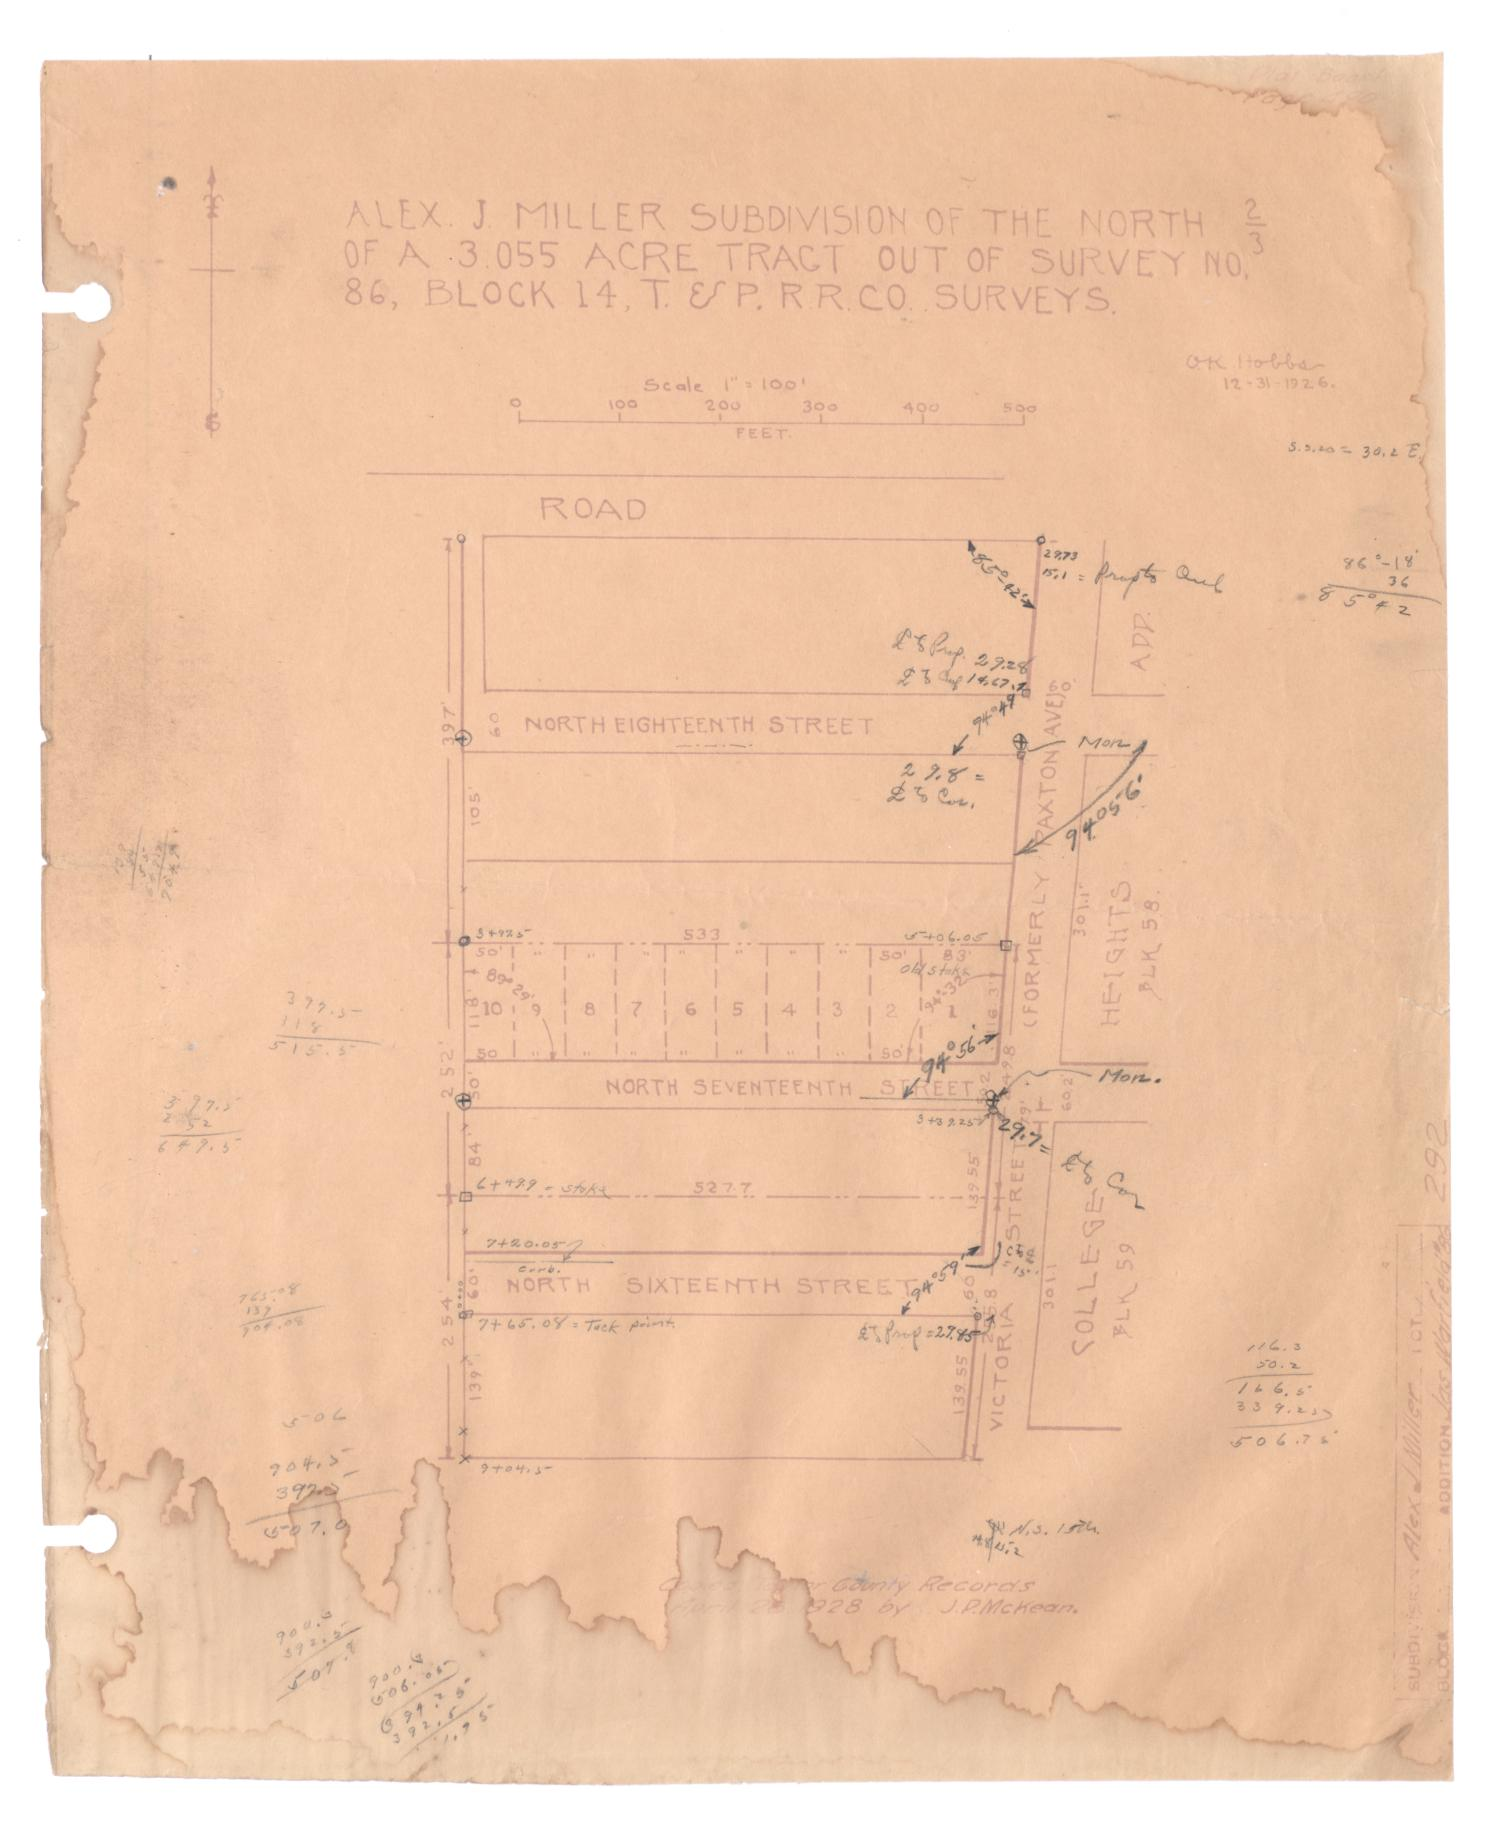 Alex J. Miller Subdivision of the North Two-Thirds of a 3.055 Acre Tract out of Survey Number 86, Block 14, Texas & Pacific Railroad Company Surveys [#3]                                                                                                      [Sequence #]: 1 of 2